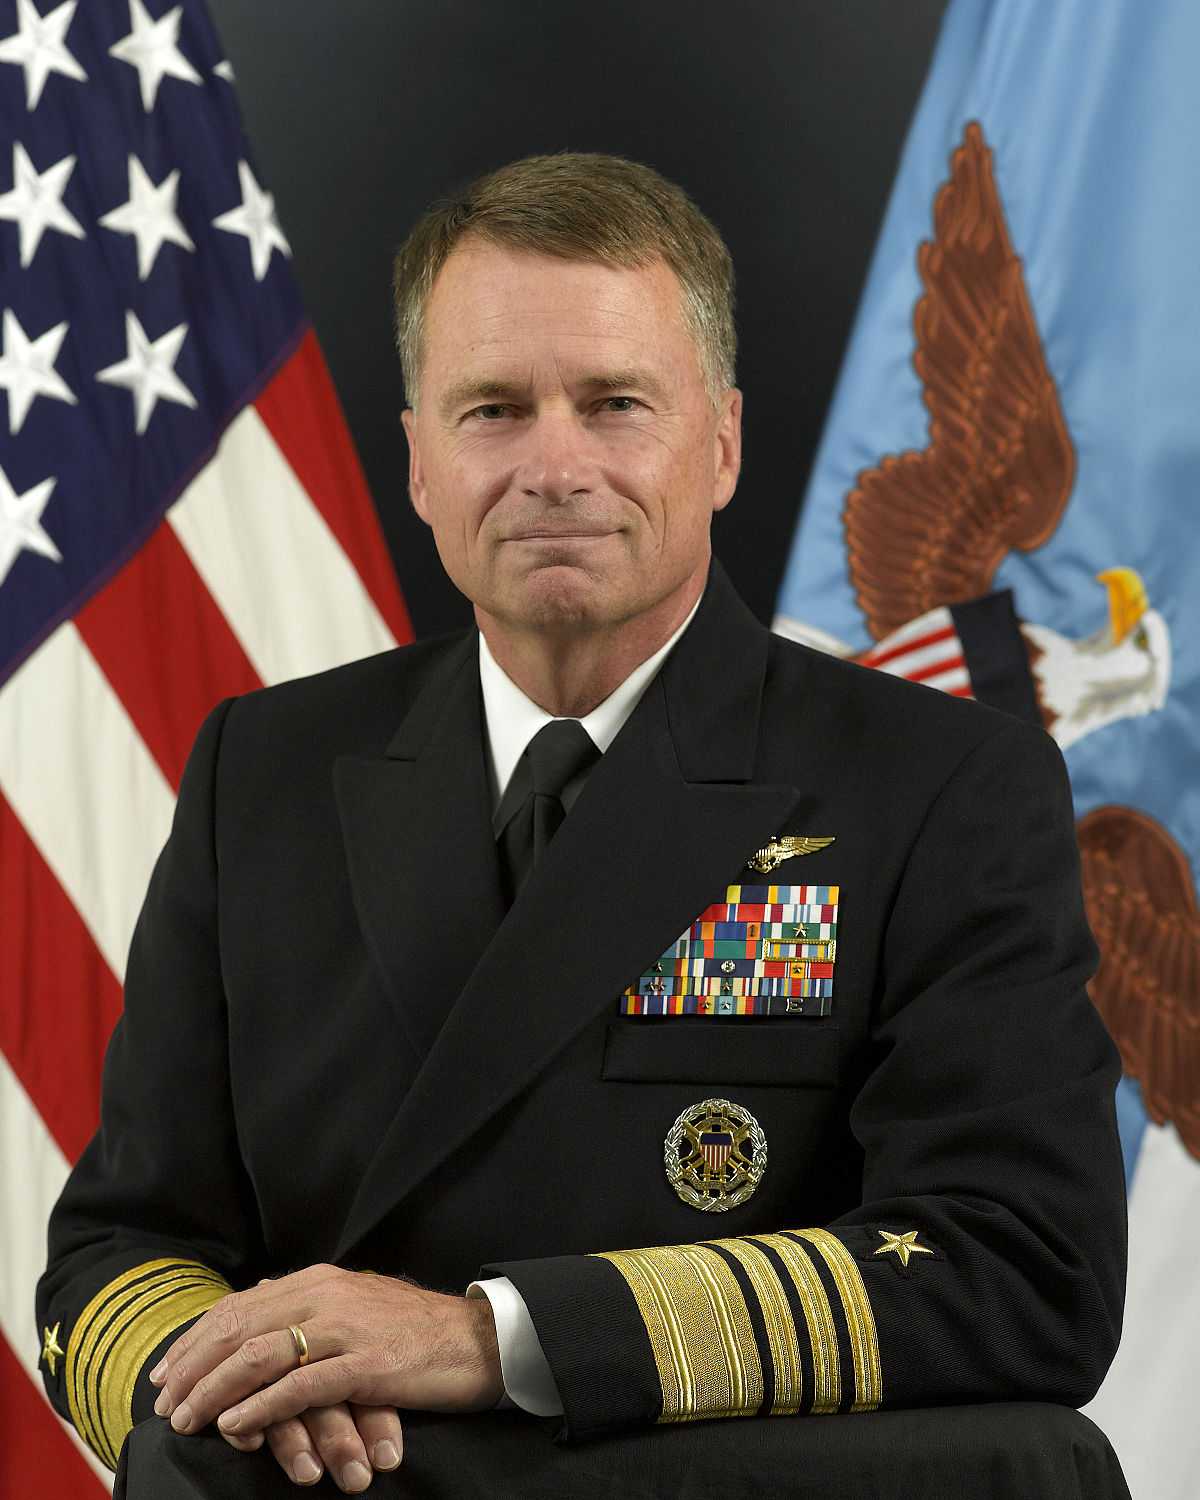 James a winnefeld jr wikipedia for Chair joint chiefs of staff